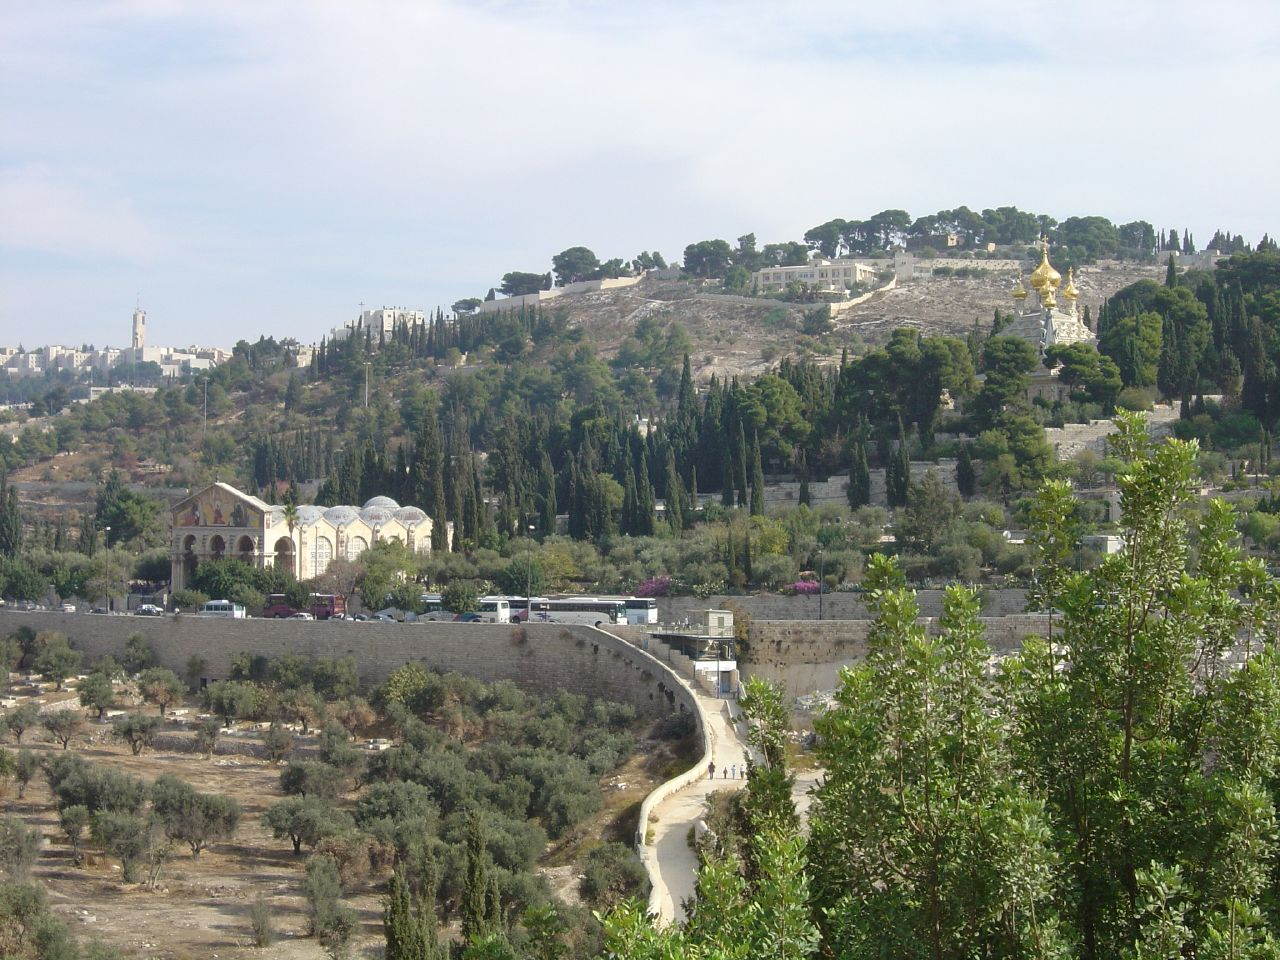 al-Tur/Mount of Olives -  الطور : General view taken from the valley of Kidron